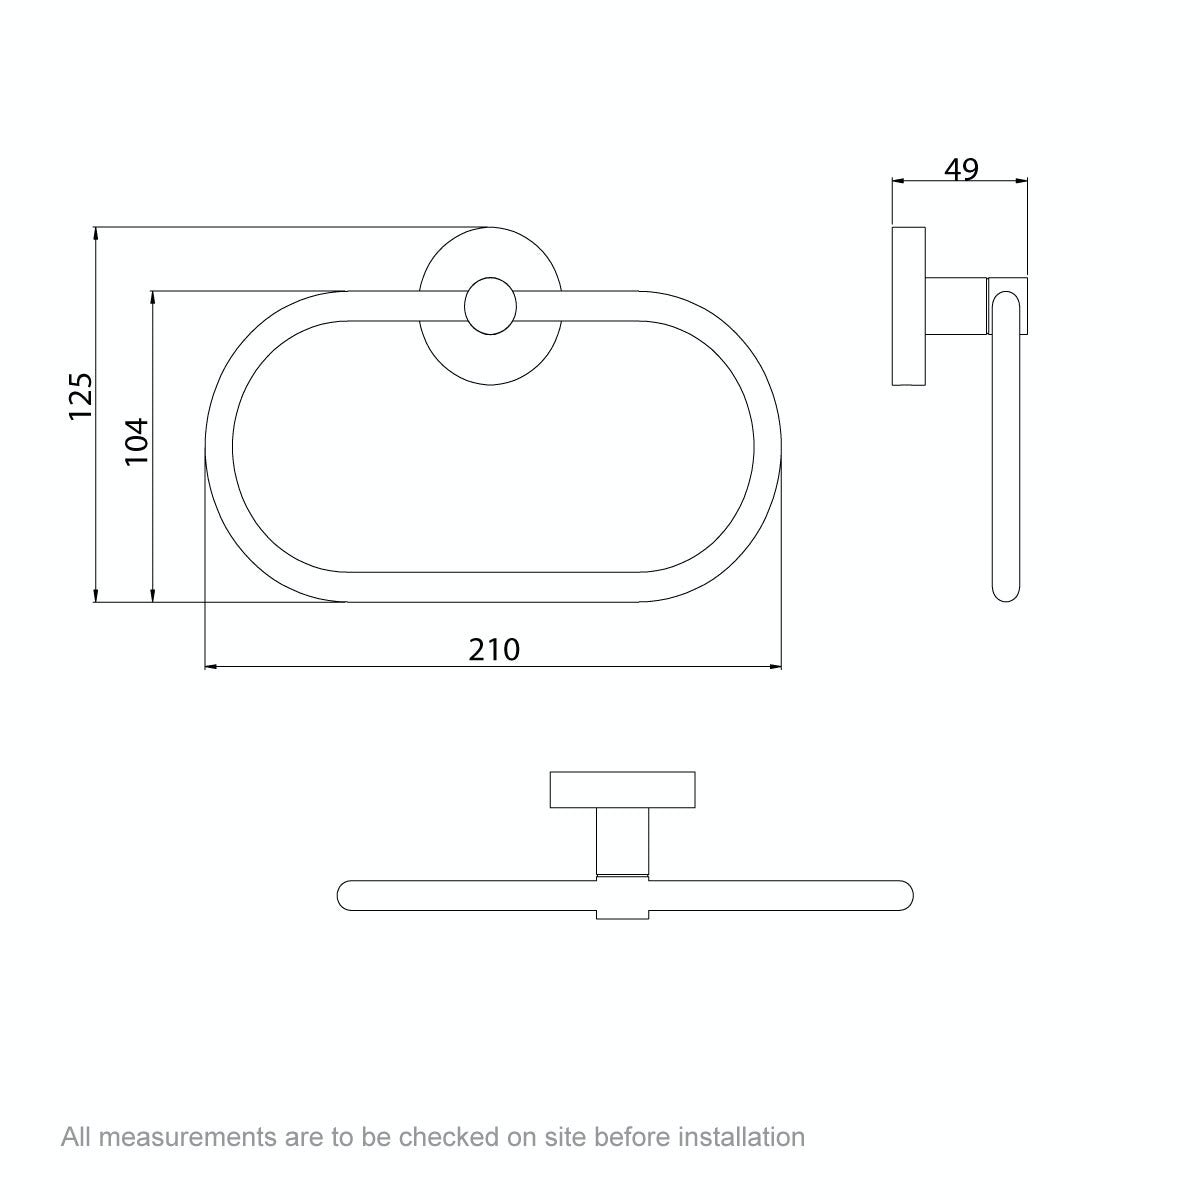 Dimensions for Orchard Lunar towel ring